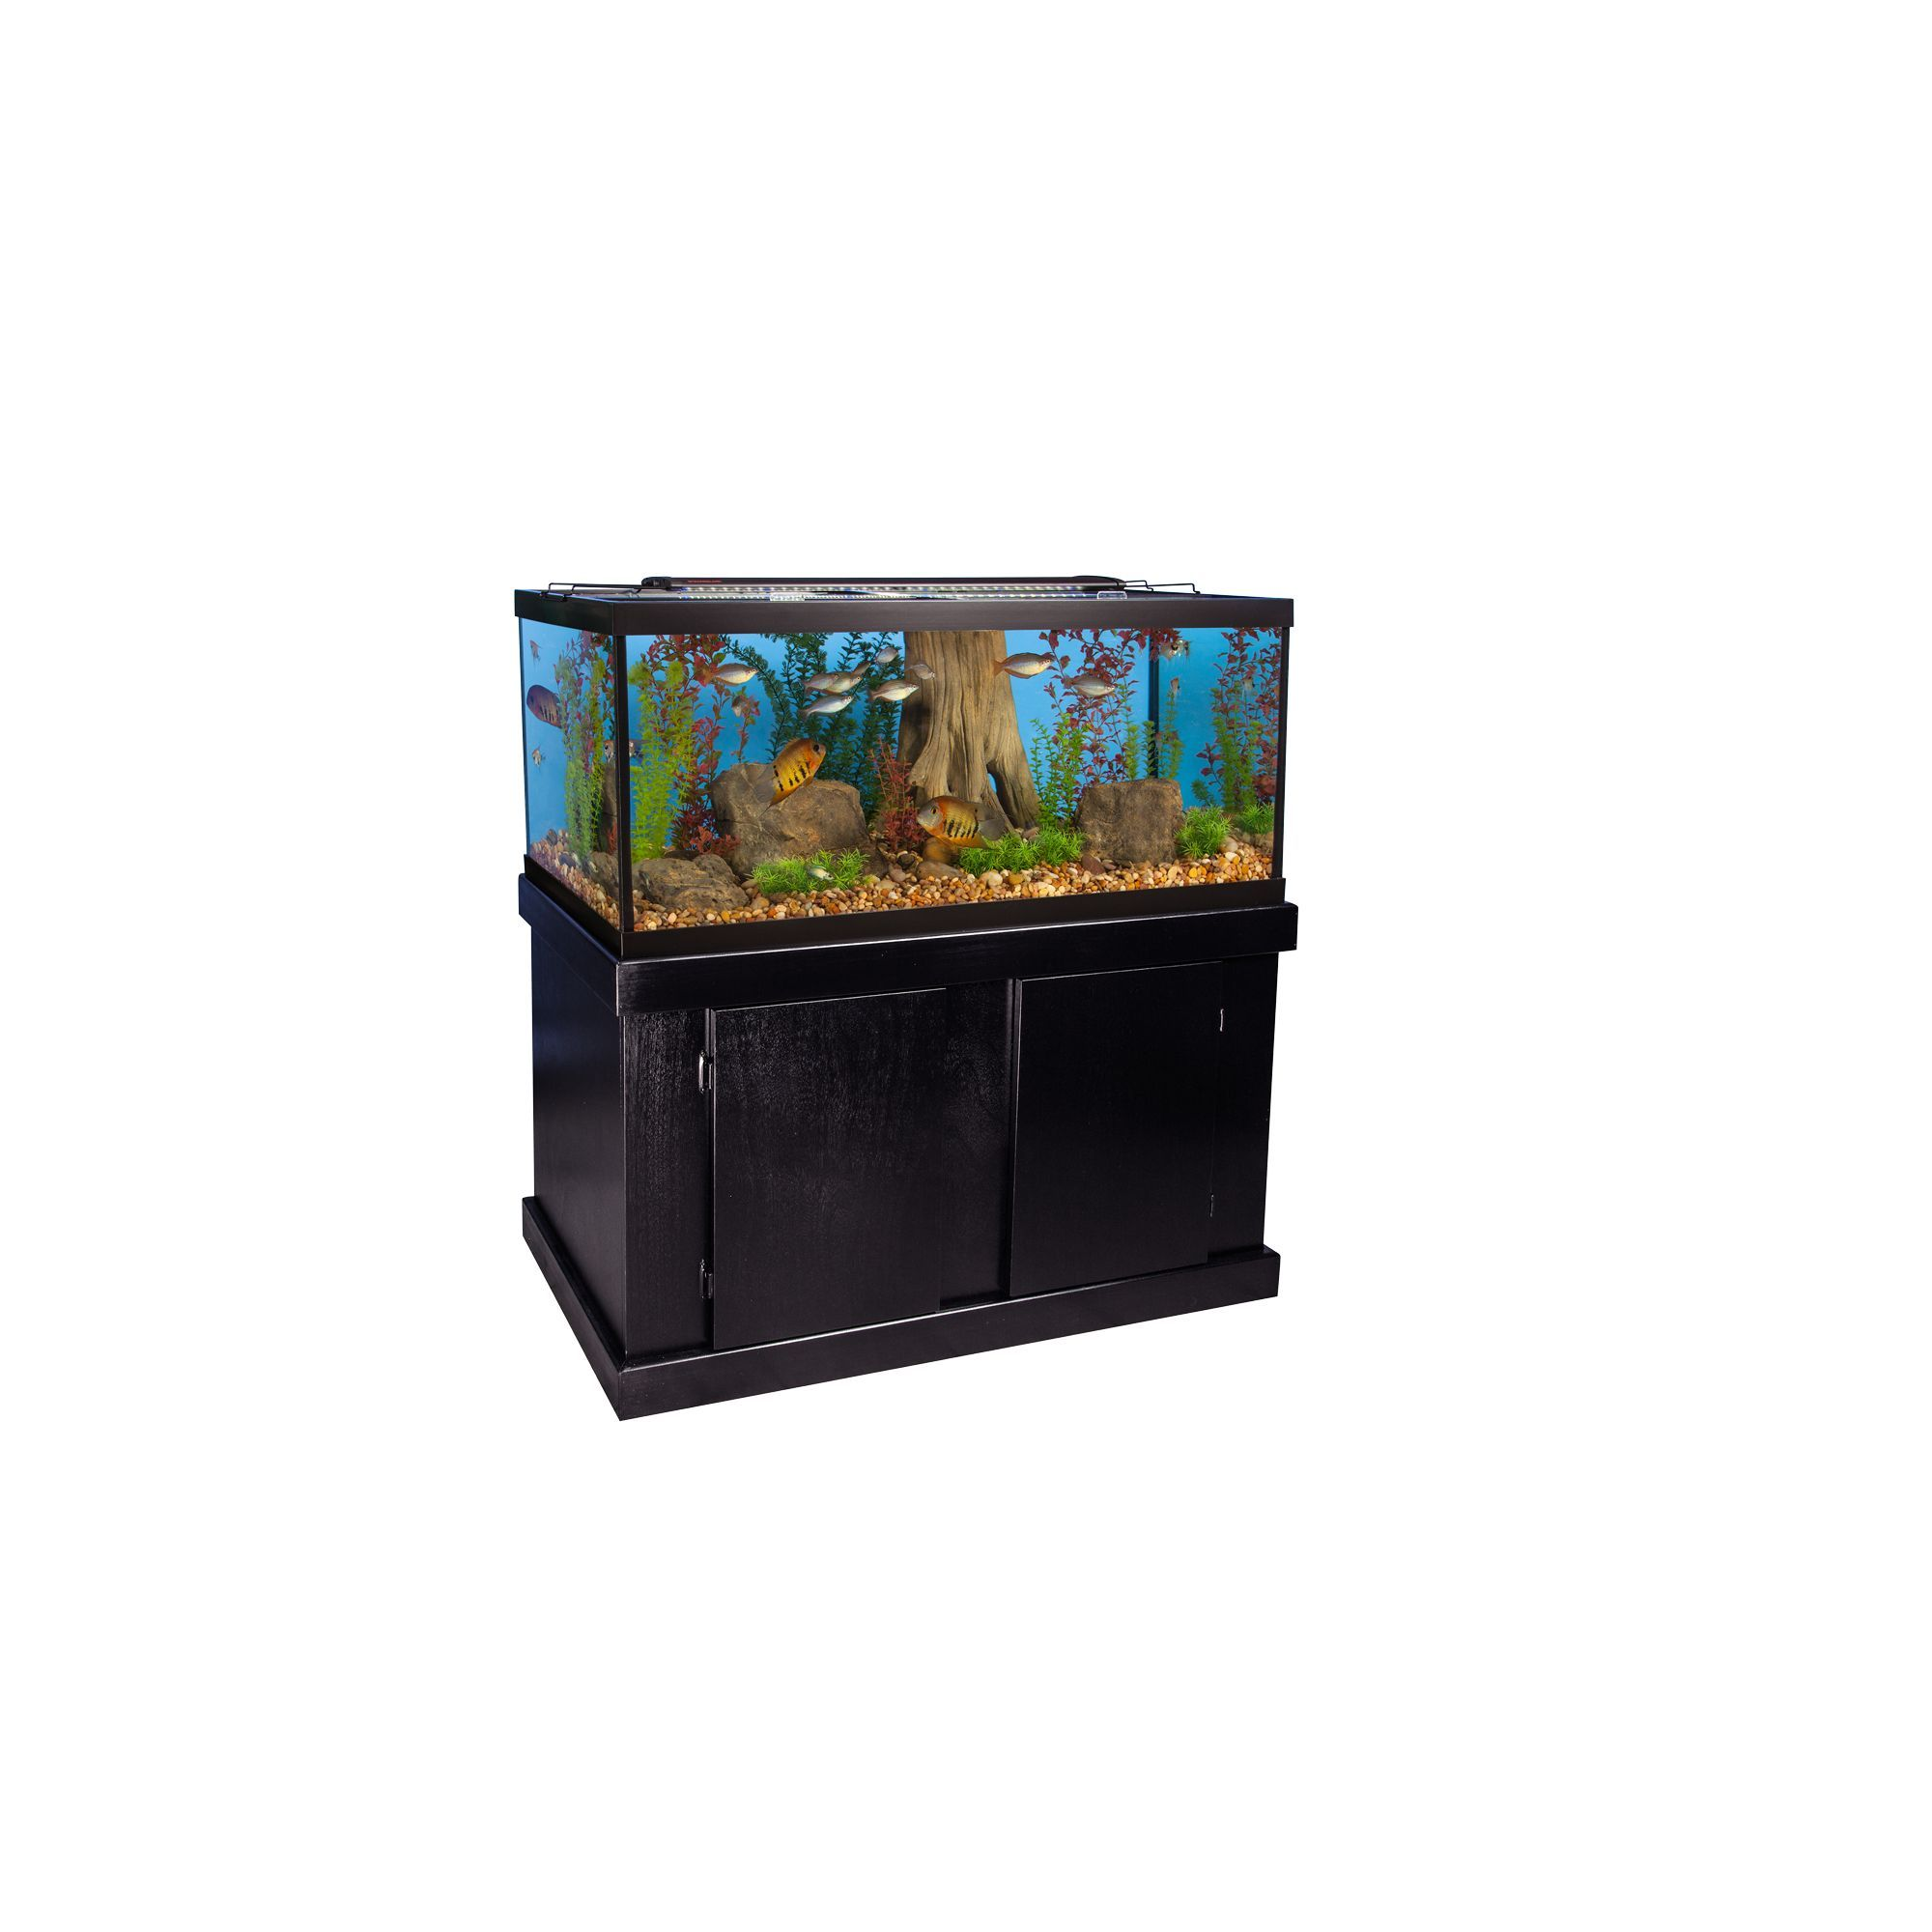 Marineland 75 Gallon Aquarium Majesty Ensemble Size Gal Black